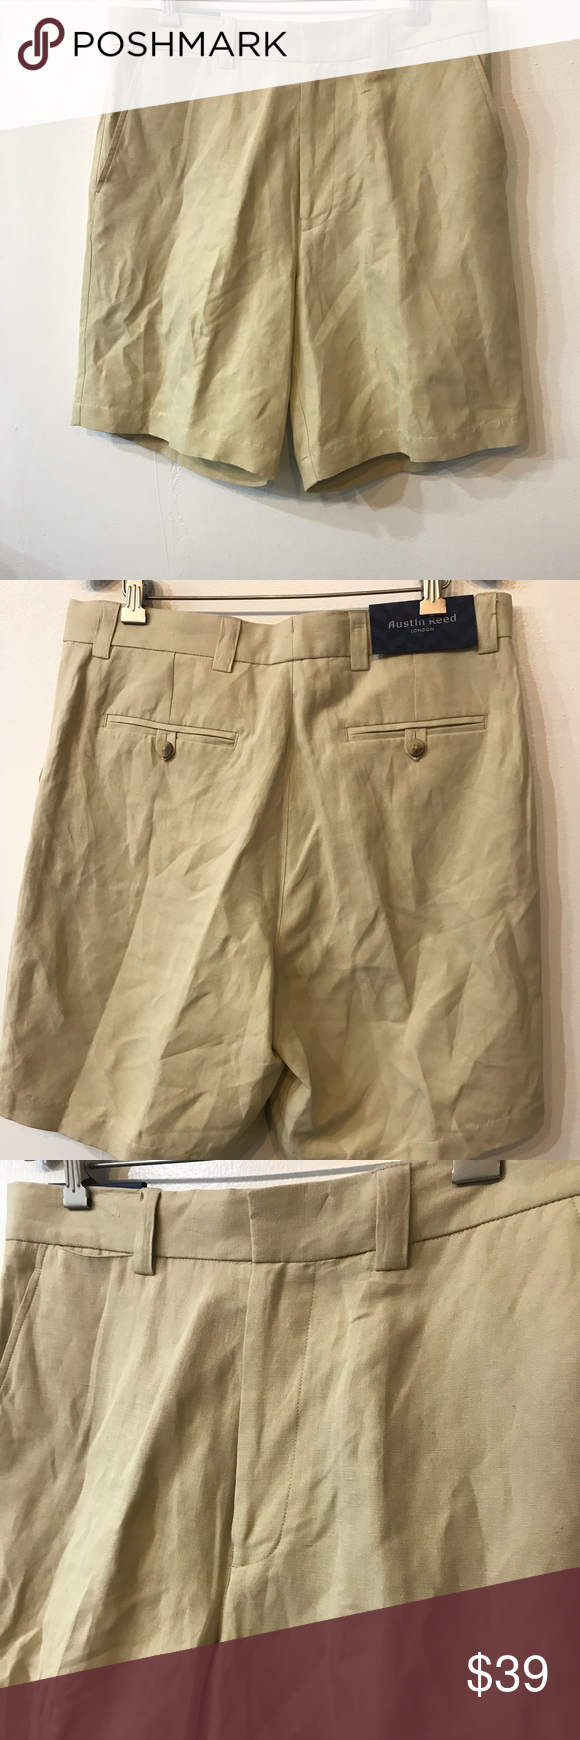 Nwt Austin Reed London Men S Casual Shorts C21 Austin Reed Casual Casual Shorts